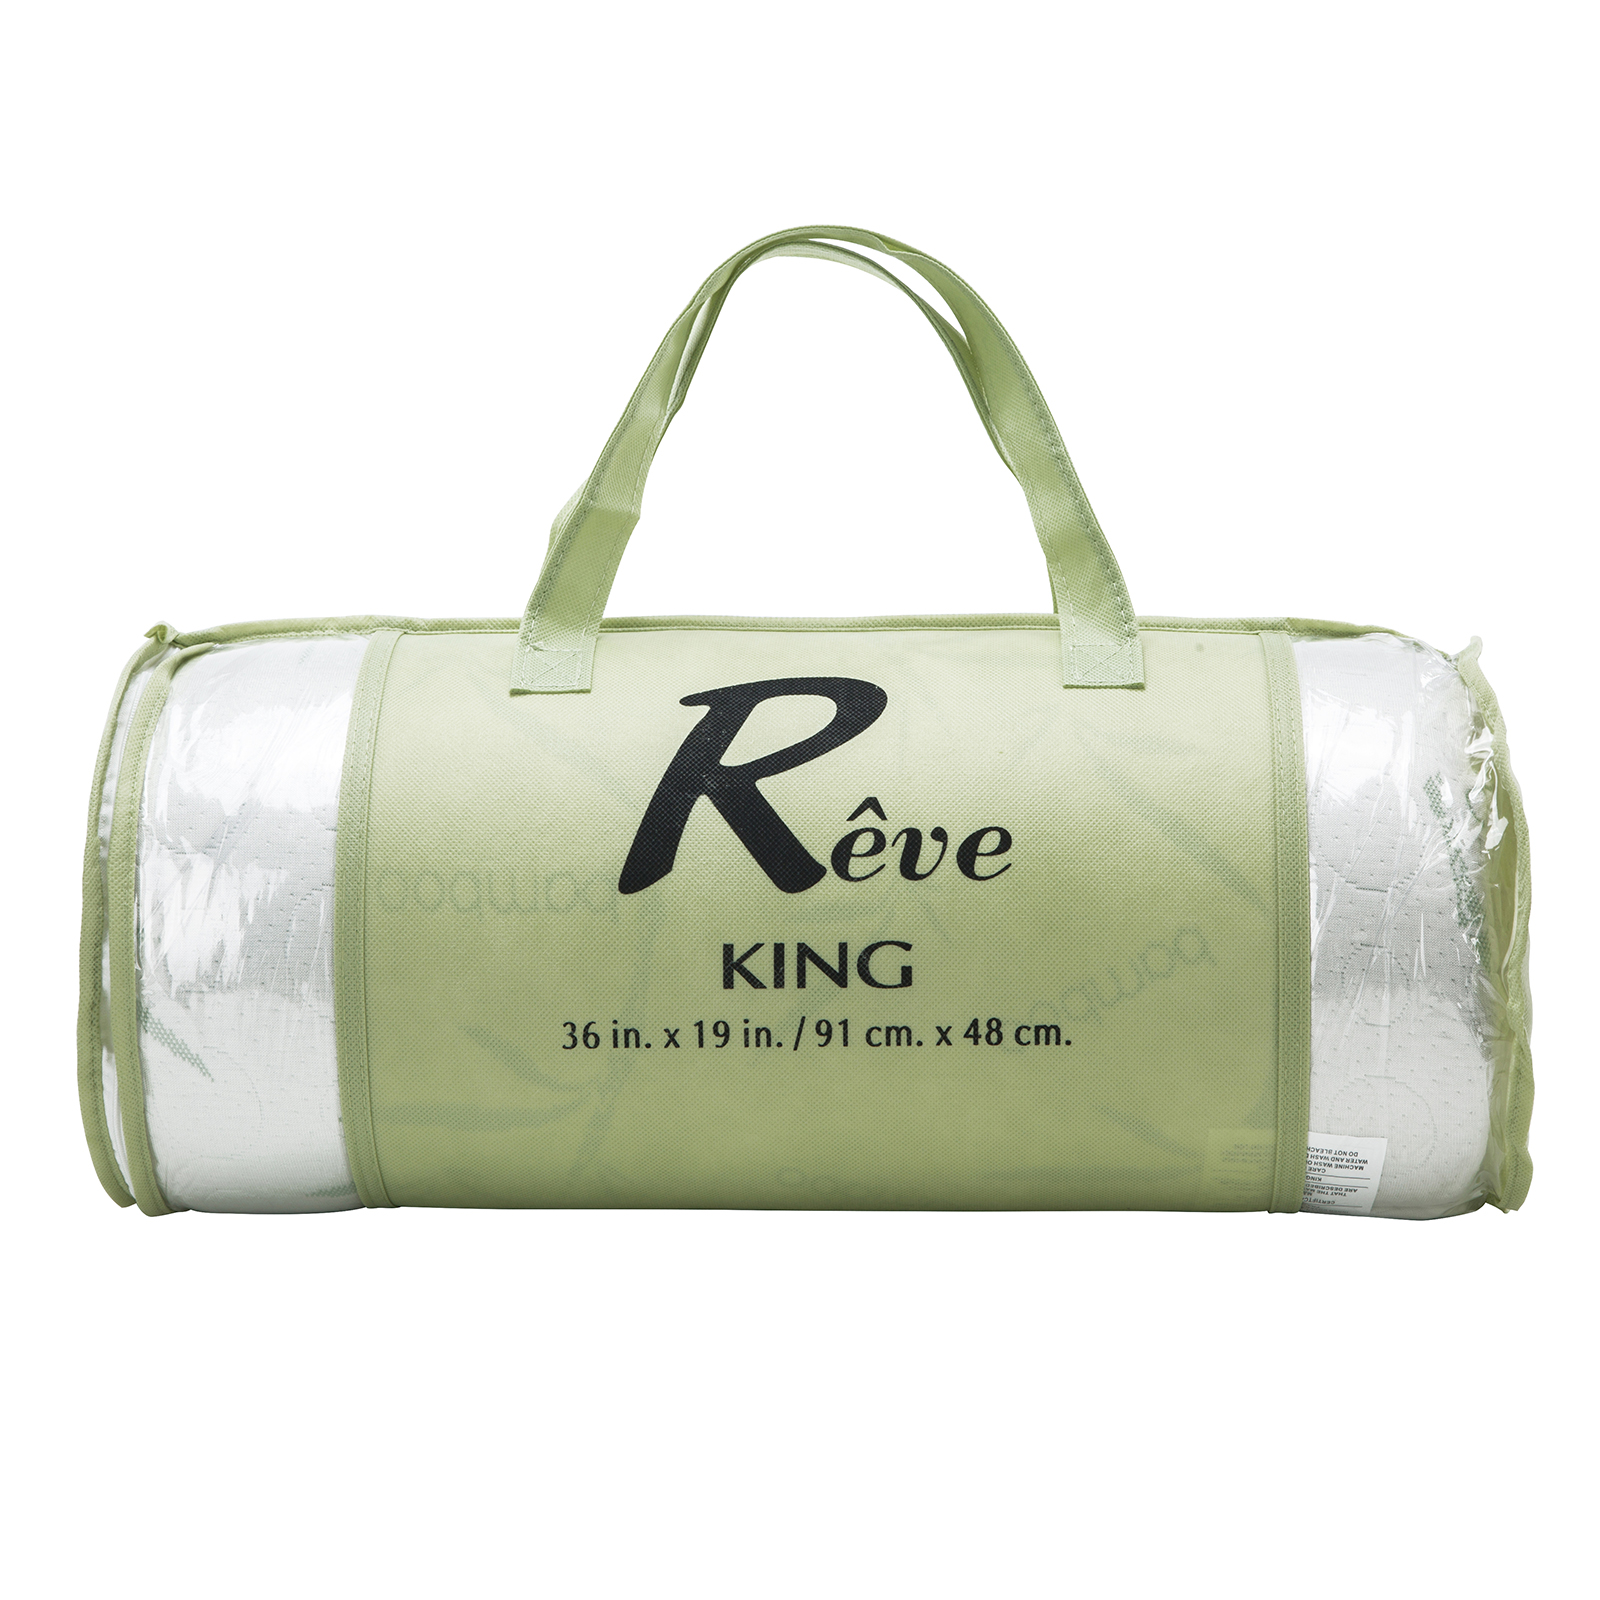 Memory Foam Bamboo Bed Pillow Removable cover Carry Bag Queen & King Size